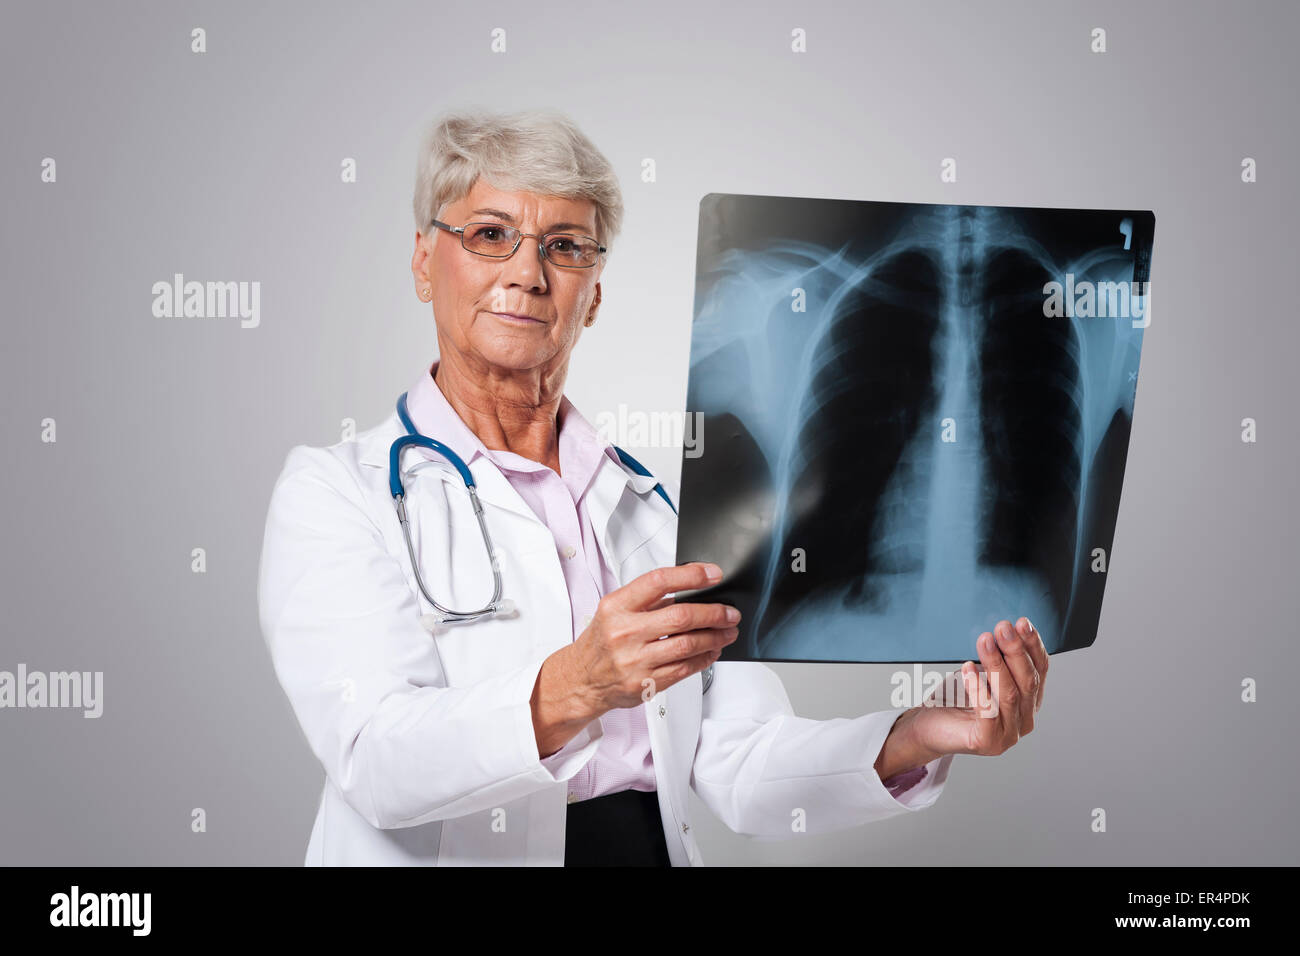 Serious senior doctor with medical test. Debica, Poland - Stock Image